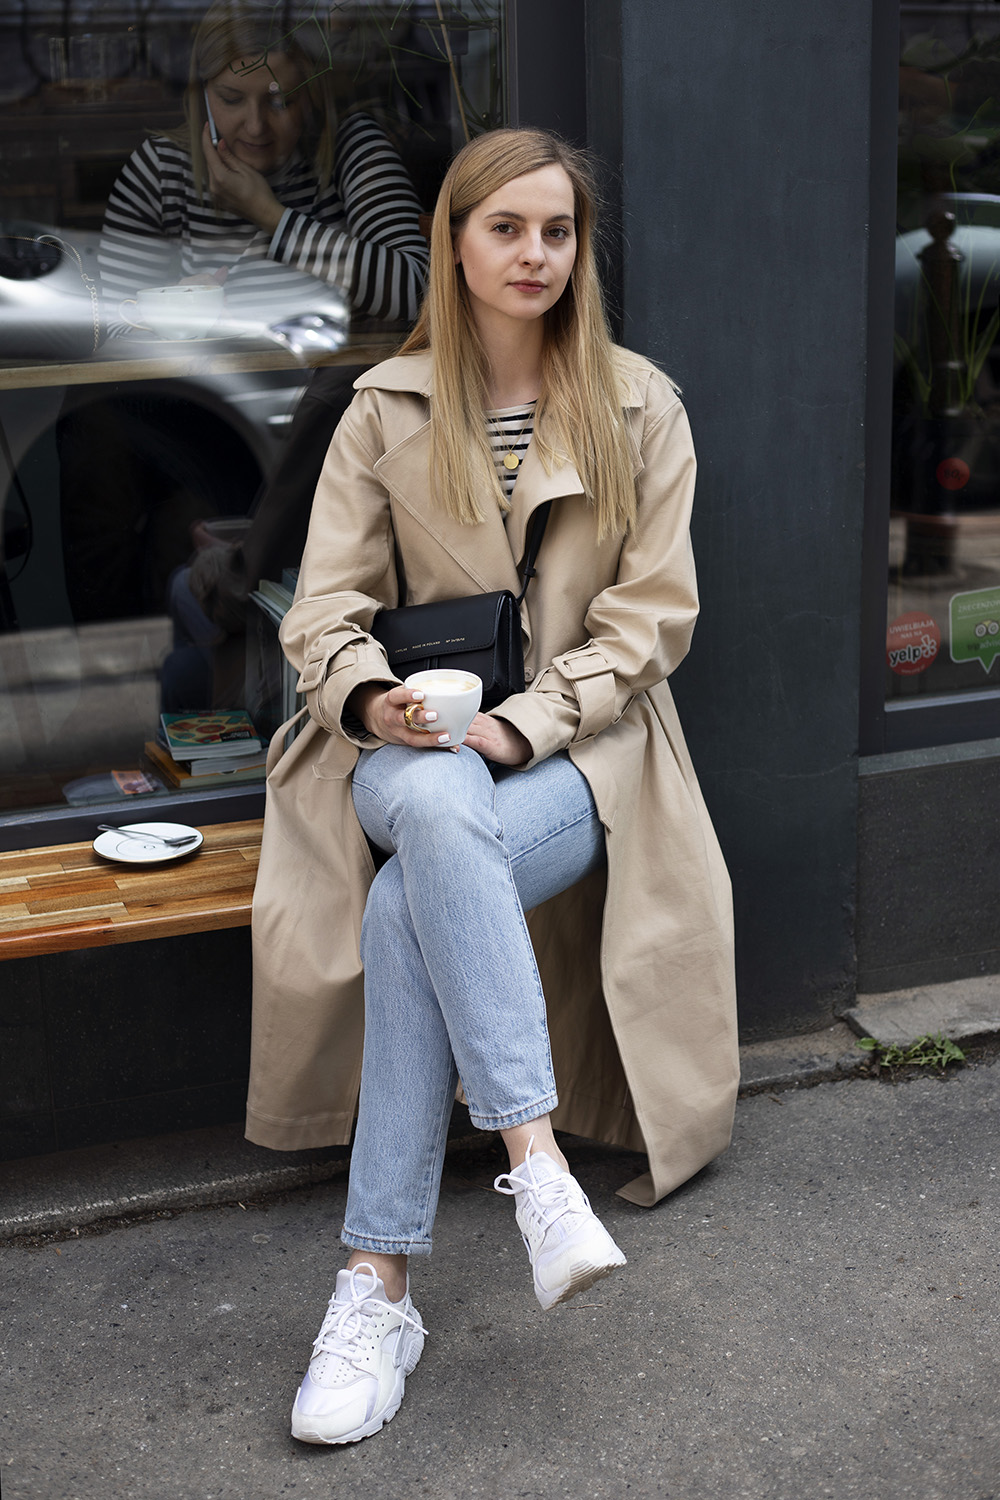 Girl drinking coffee in beige H&M trench and blue jeans